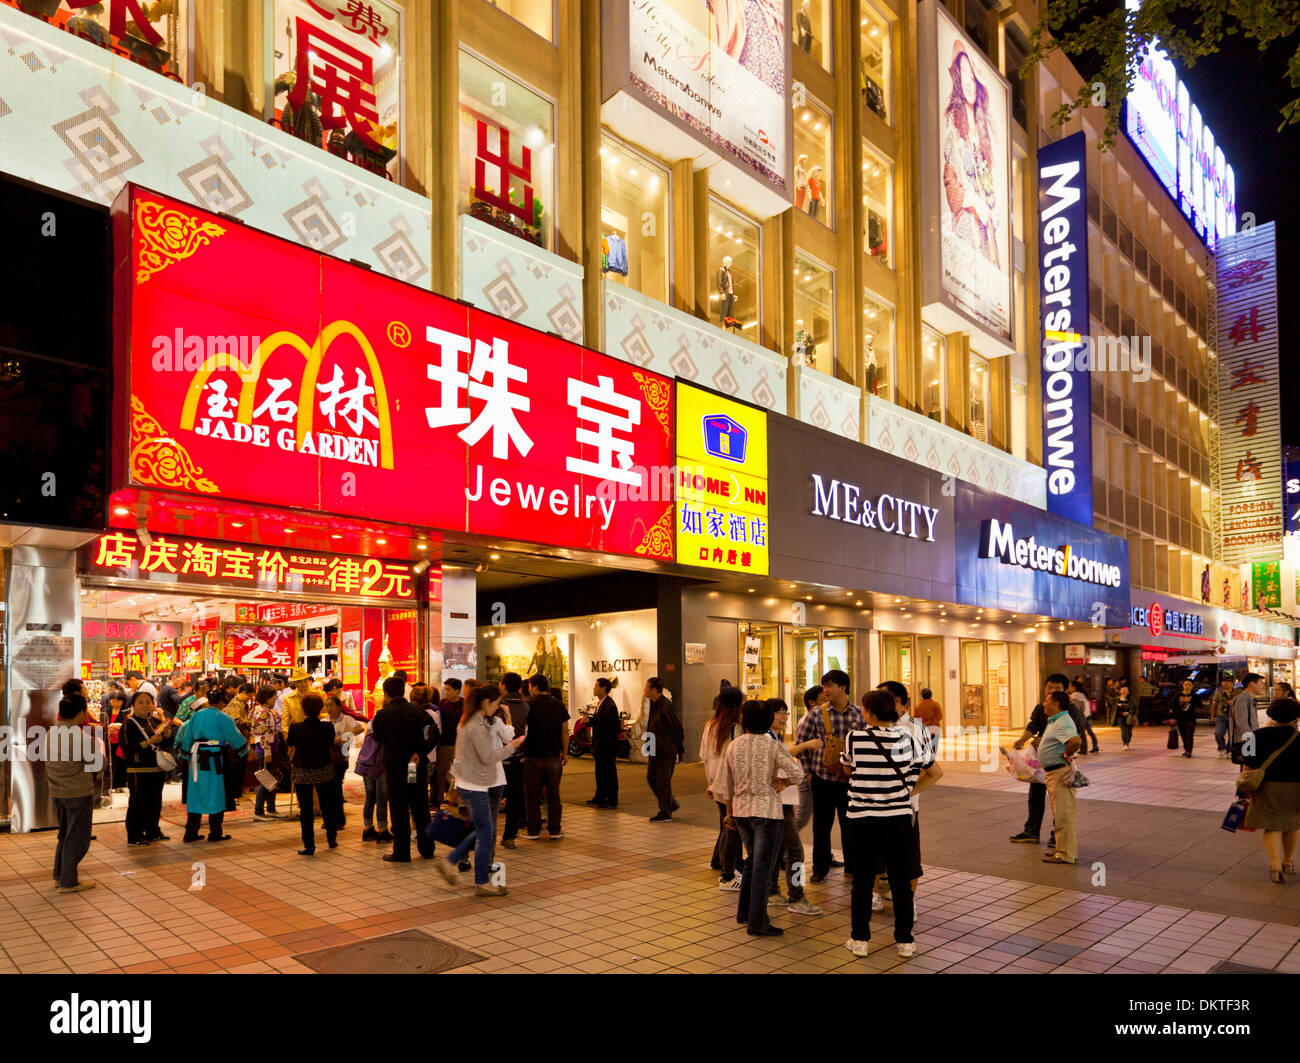 Shoppers and tourists on Wangfujing shopping street at night Beijing, PRC, People's Republic of China, Asia - Stock Image